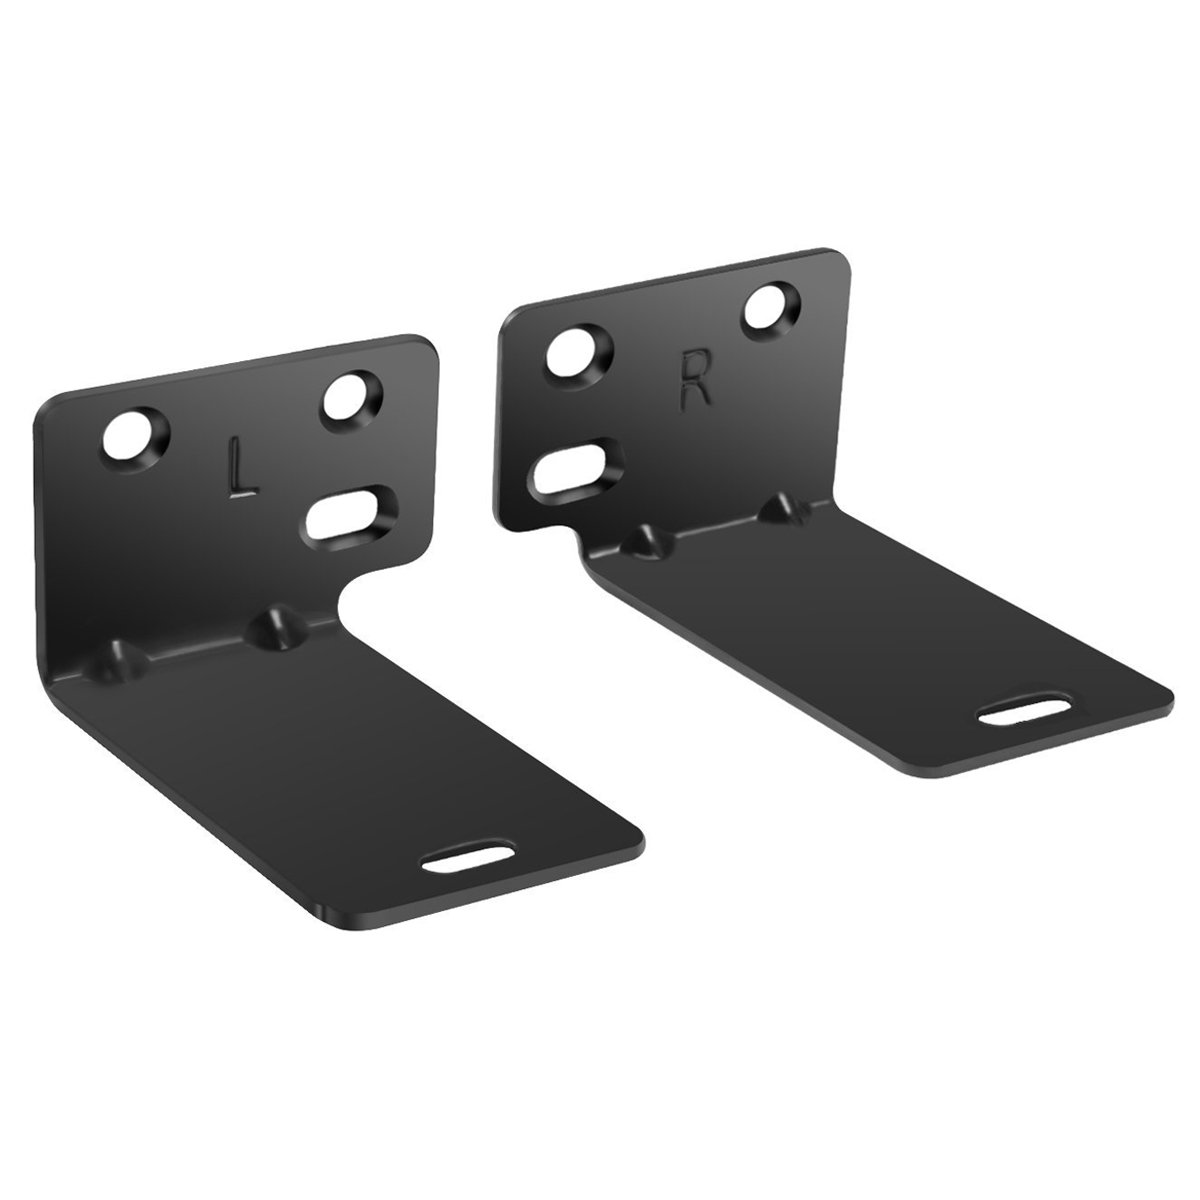 Wall Bracket For Bose WB-300 SoundTouch 300 Soundbar Speaker,Black